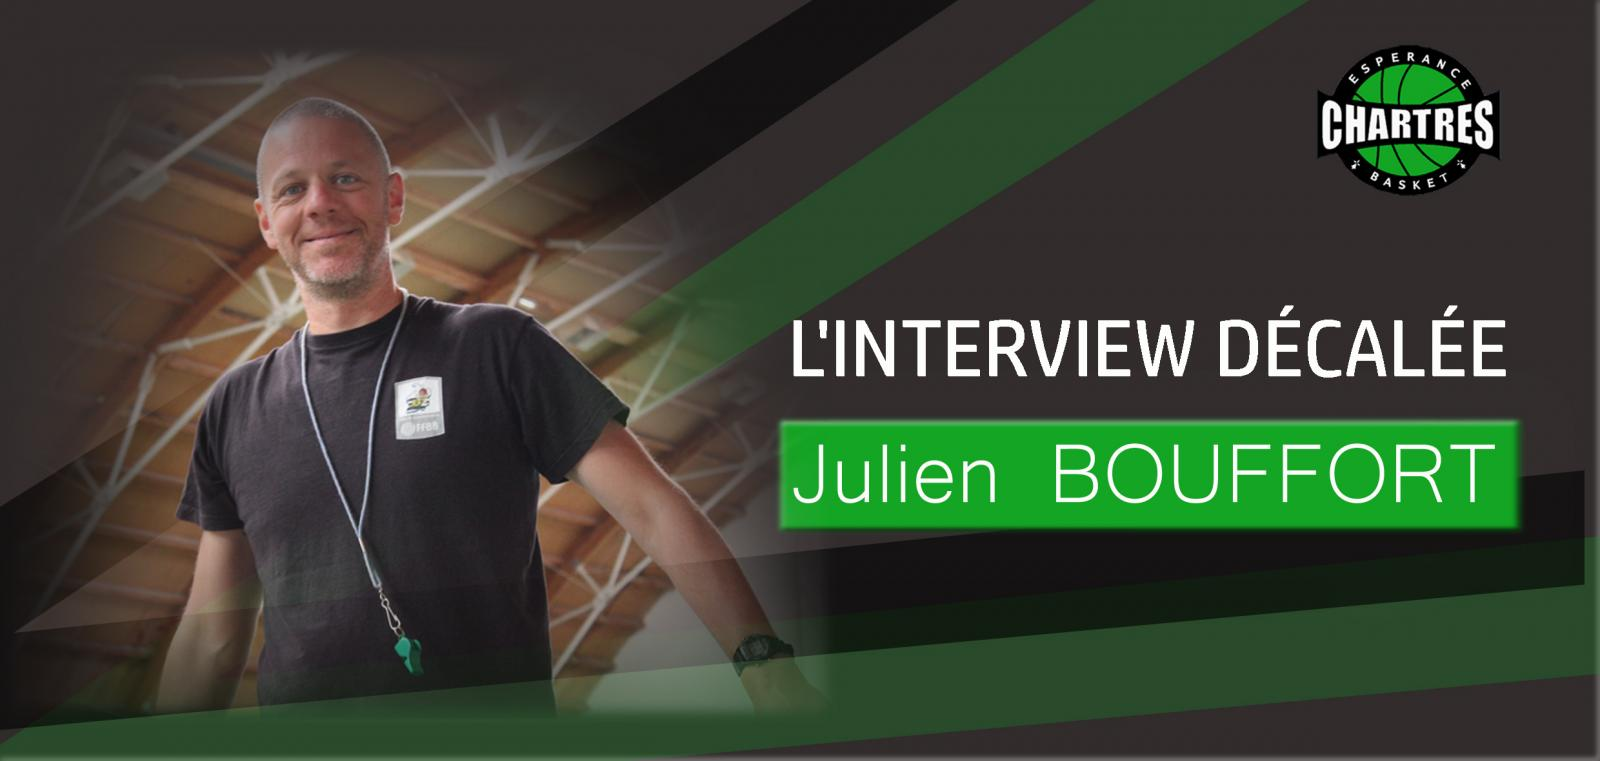 Interview décalée Julien BOUFFORT